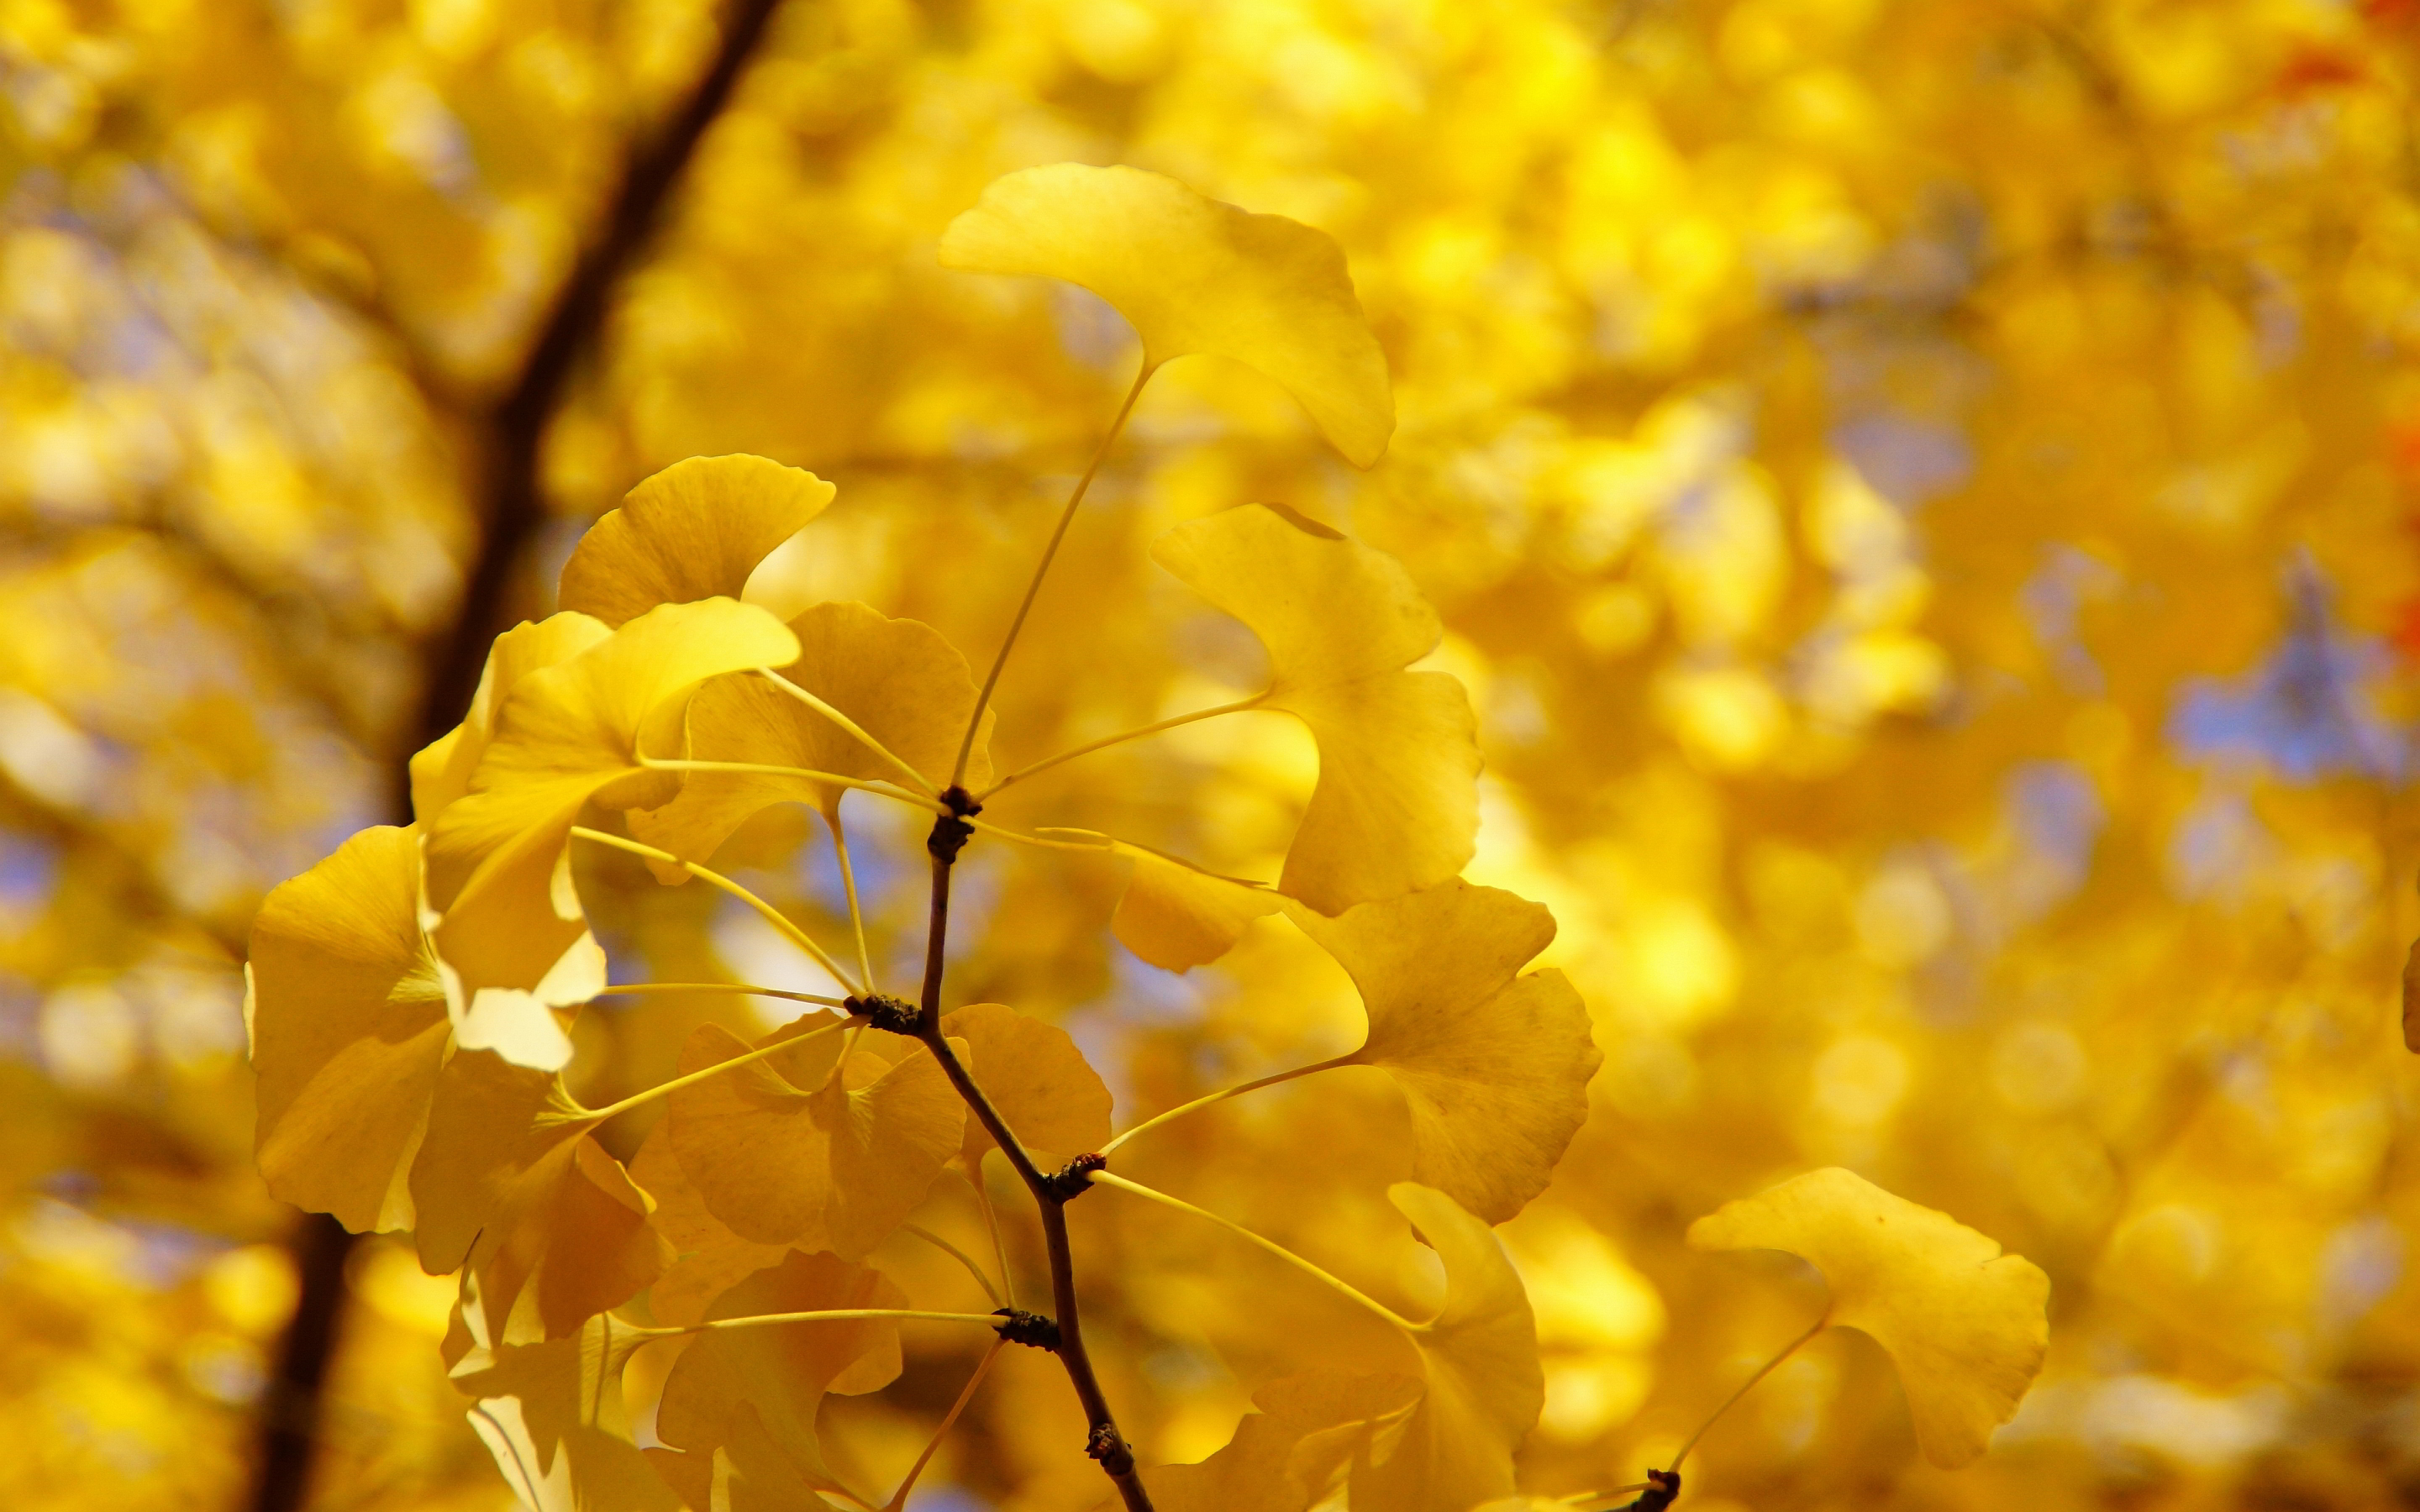 autumn yelloq twig